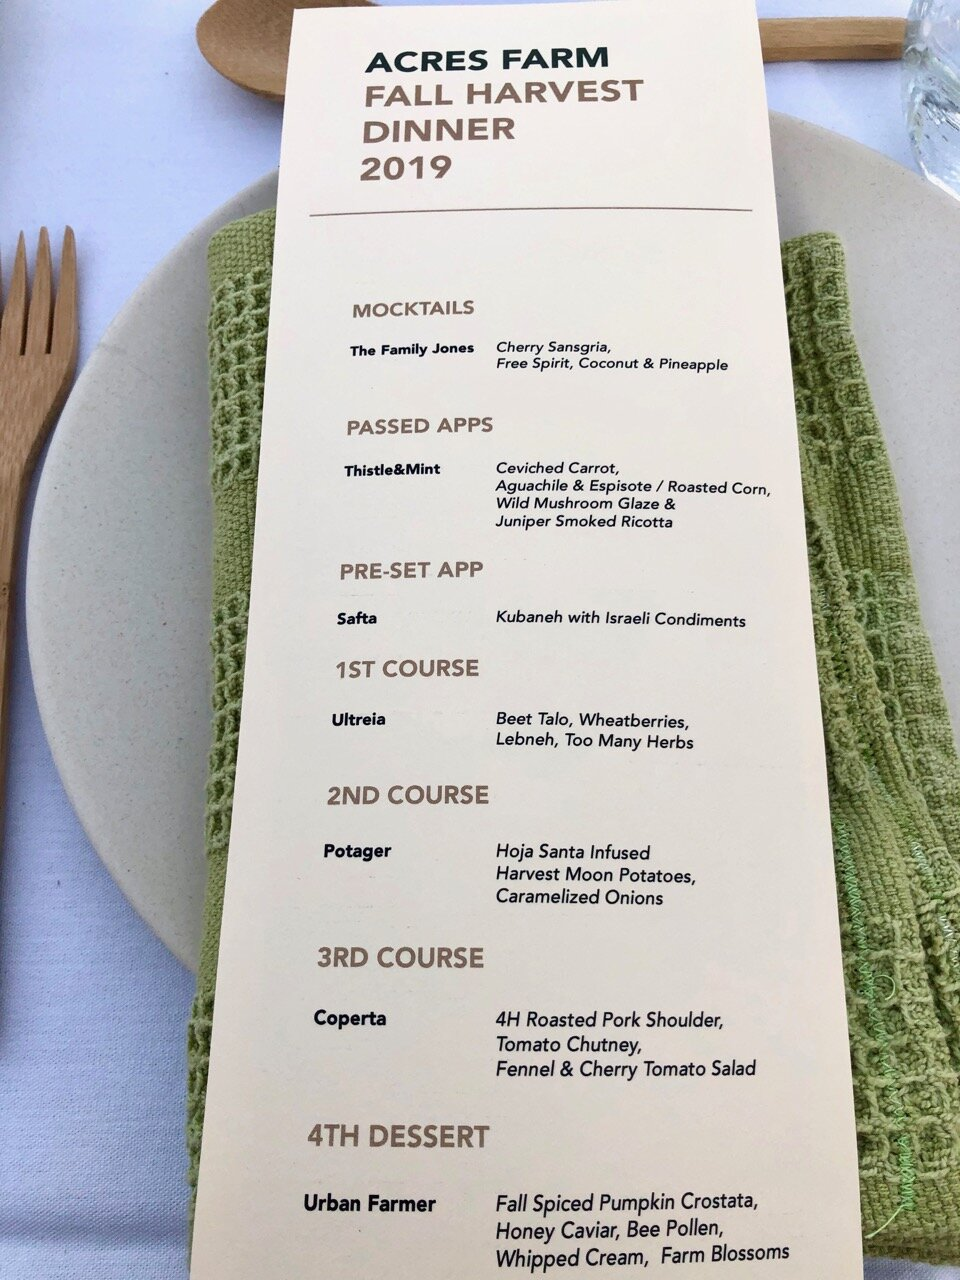 the menu for tonight's dinner